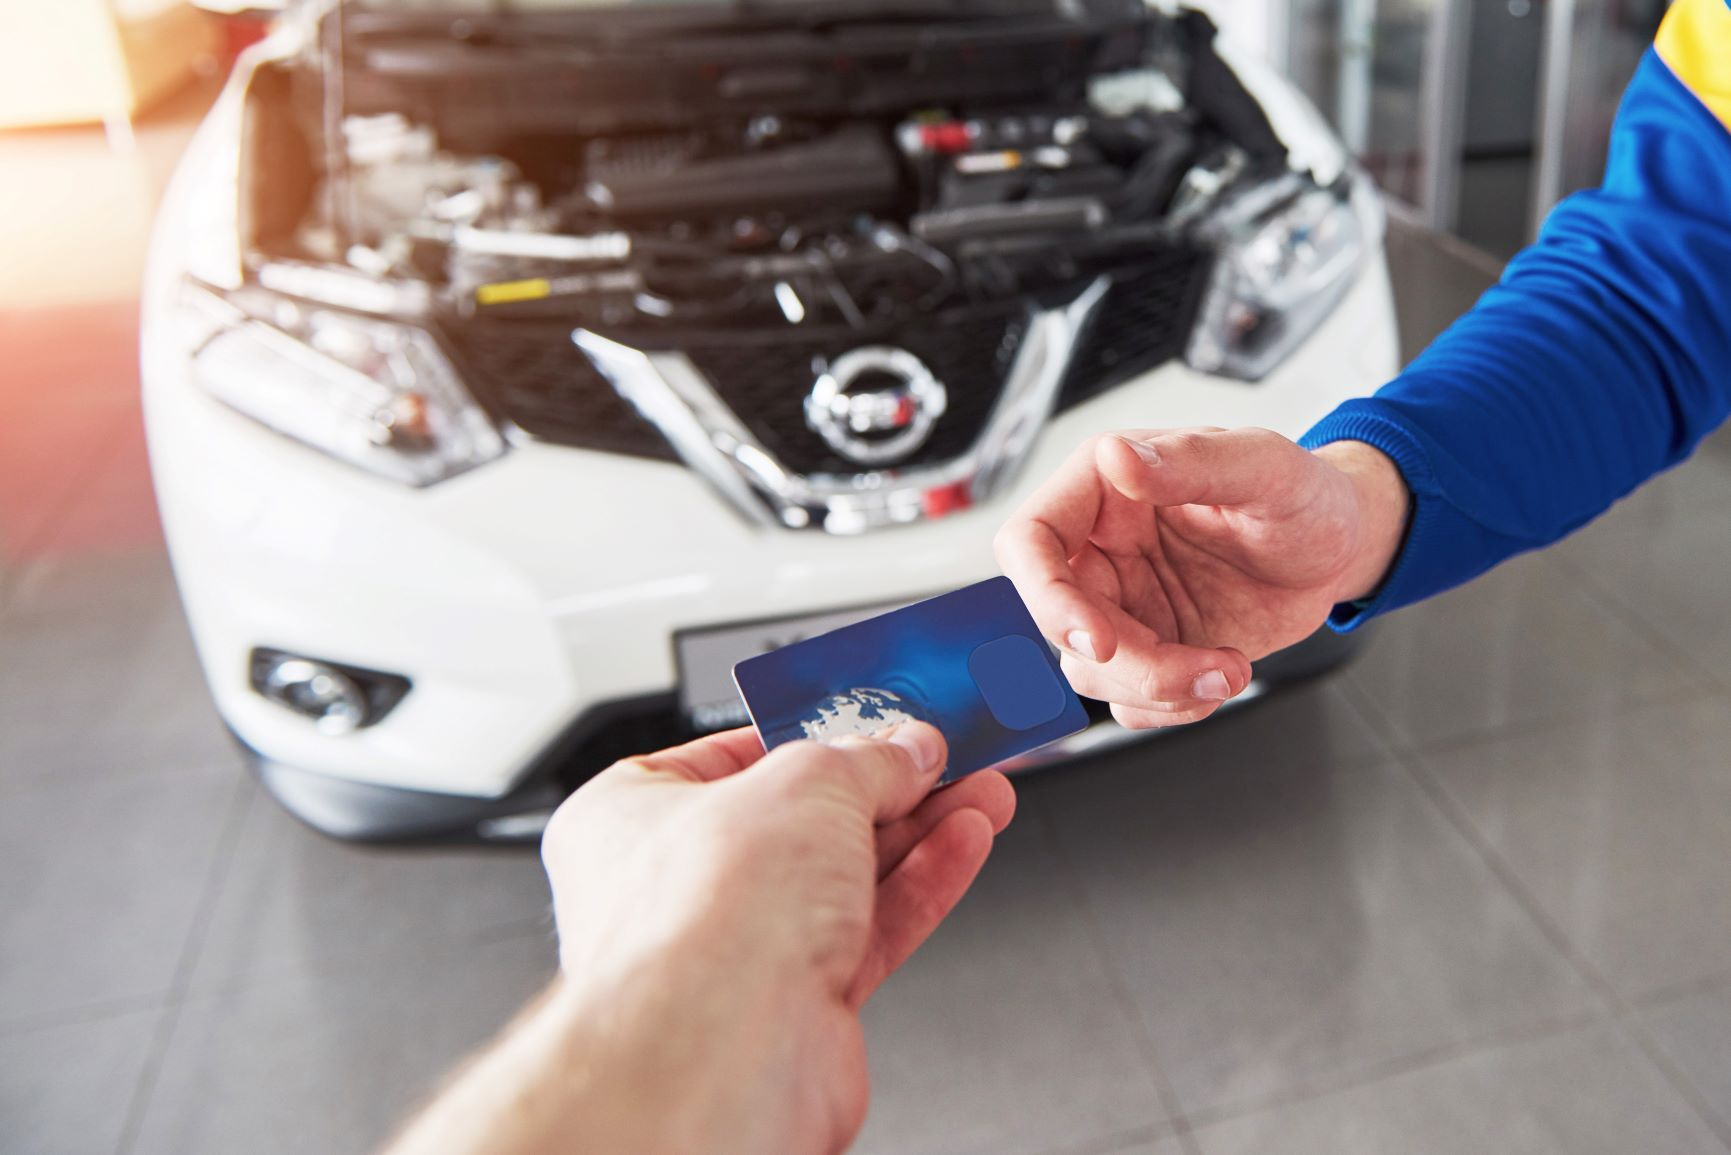 handing a credit card to a mechanic in front of car